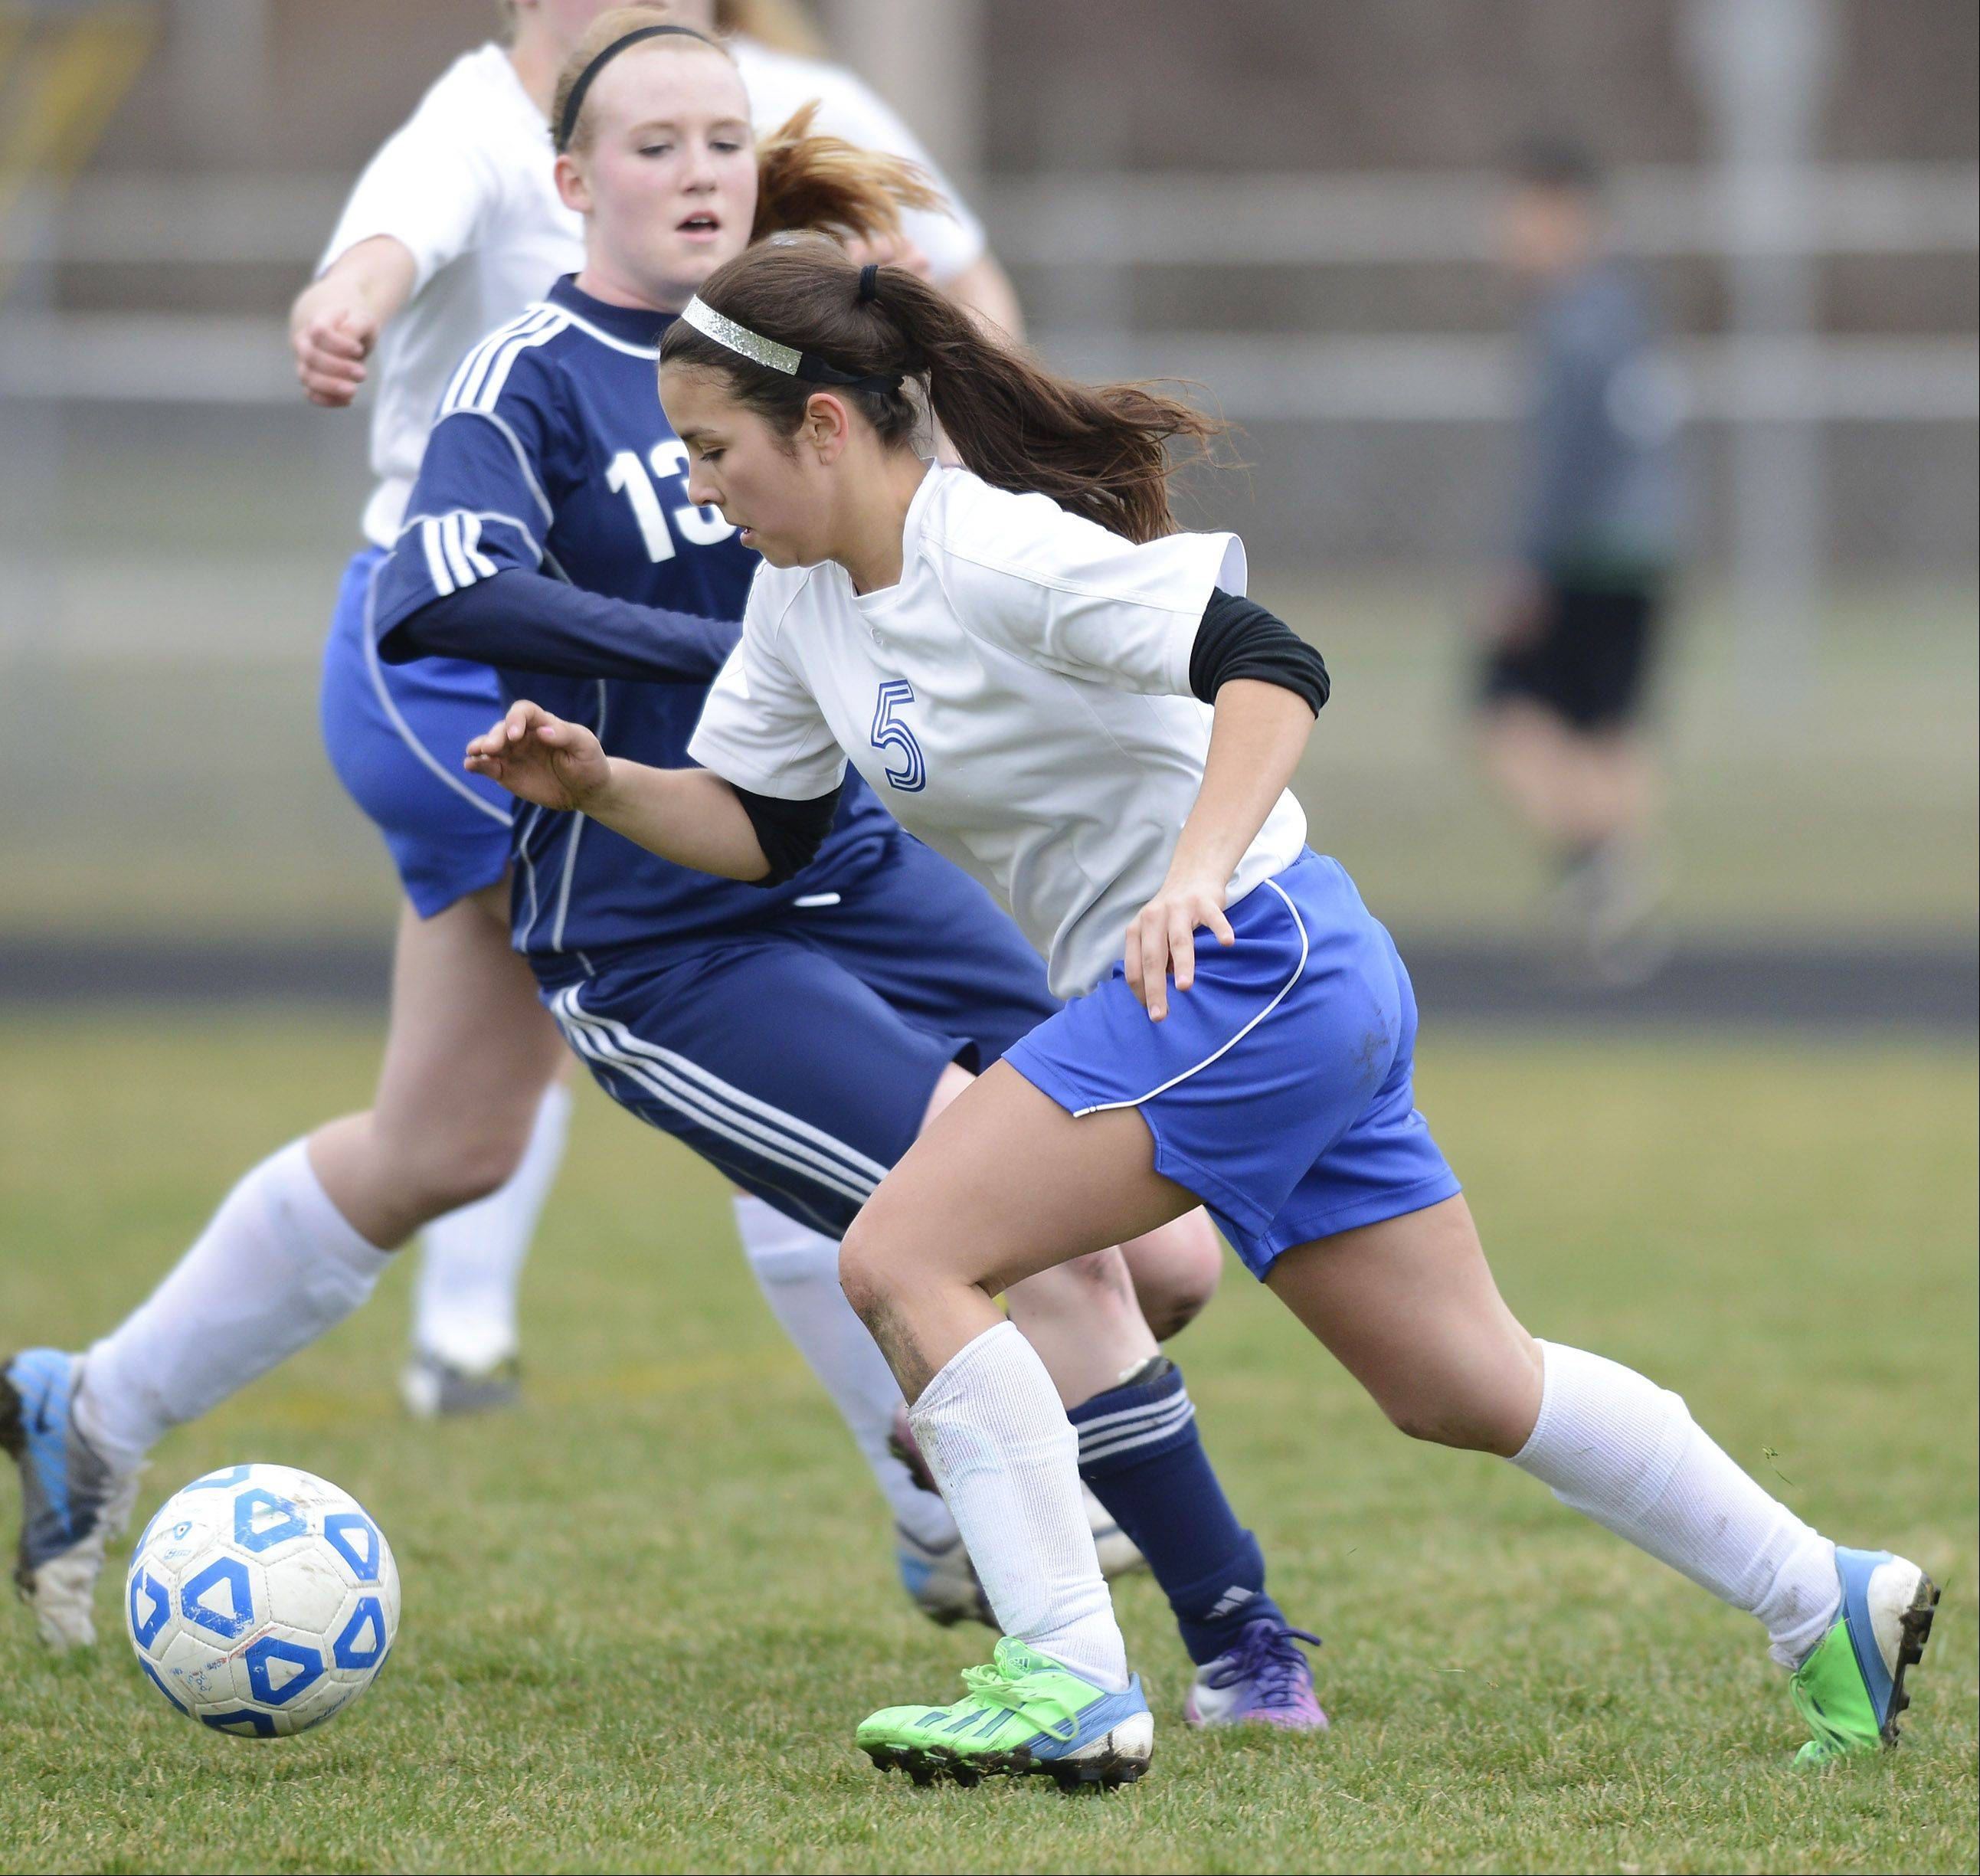 Christian Liberty's Maddie Bennett, front, tries to make a move past Harvest Christian's Morgan Lockwood during Tuesday's game in Arlington Heights.